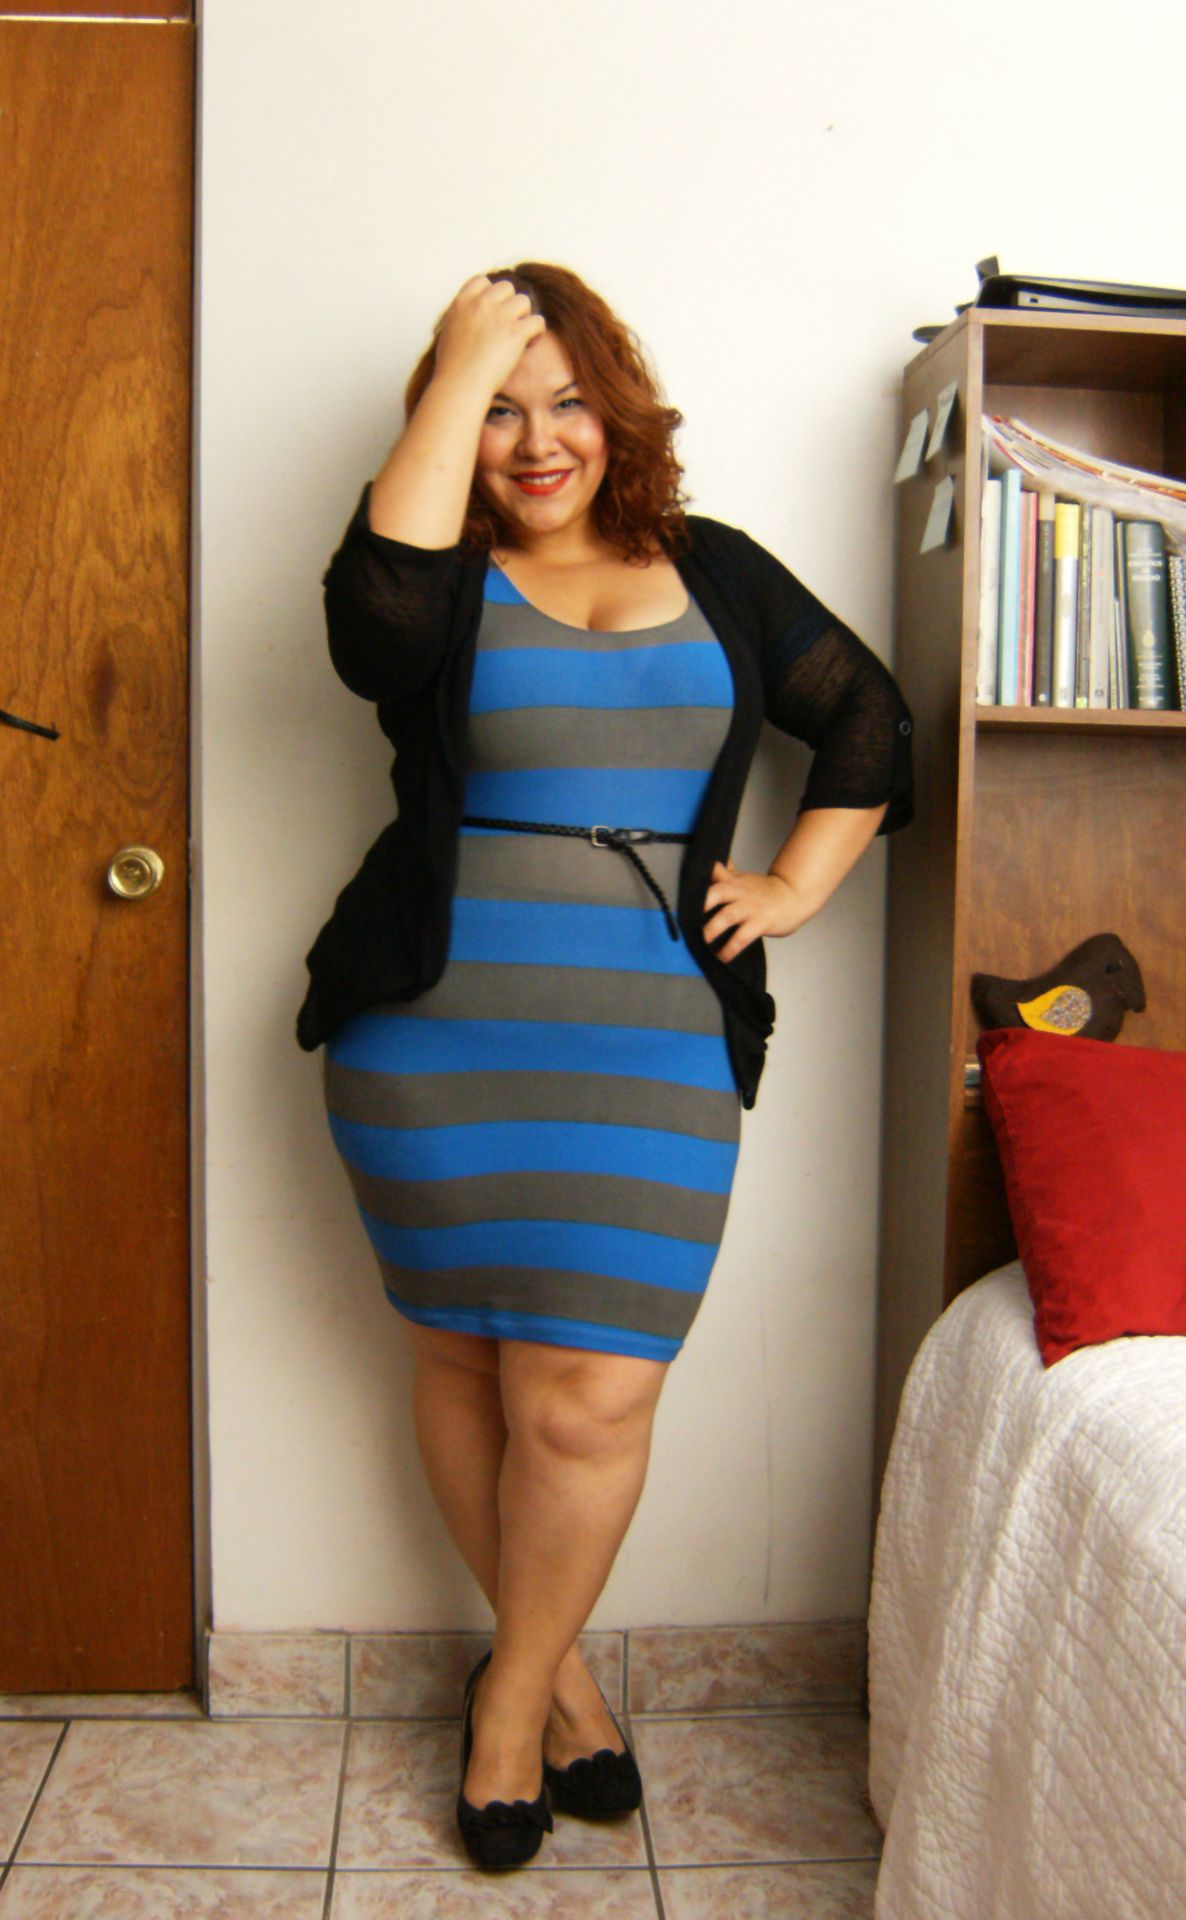 Pin by Lia McIntosh on Curvy Fashion | Pinterest